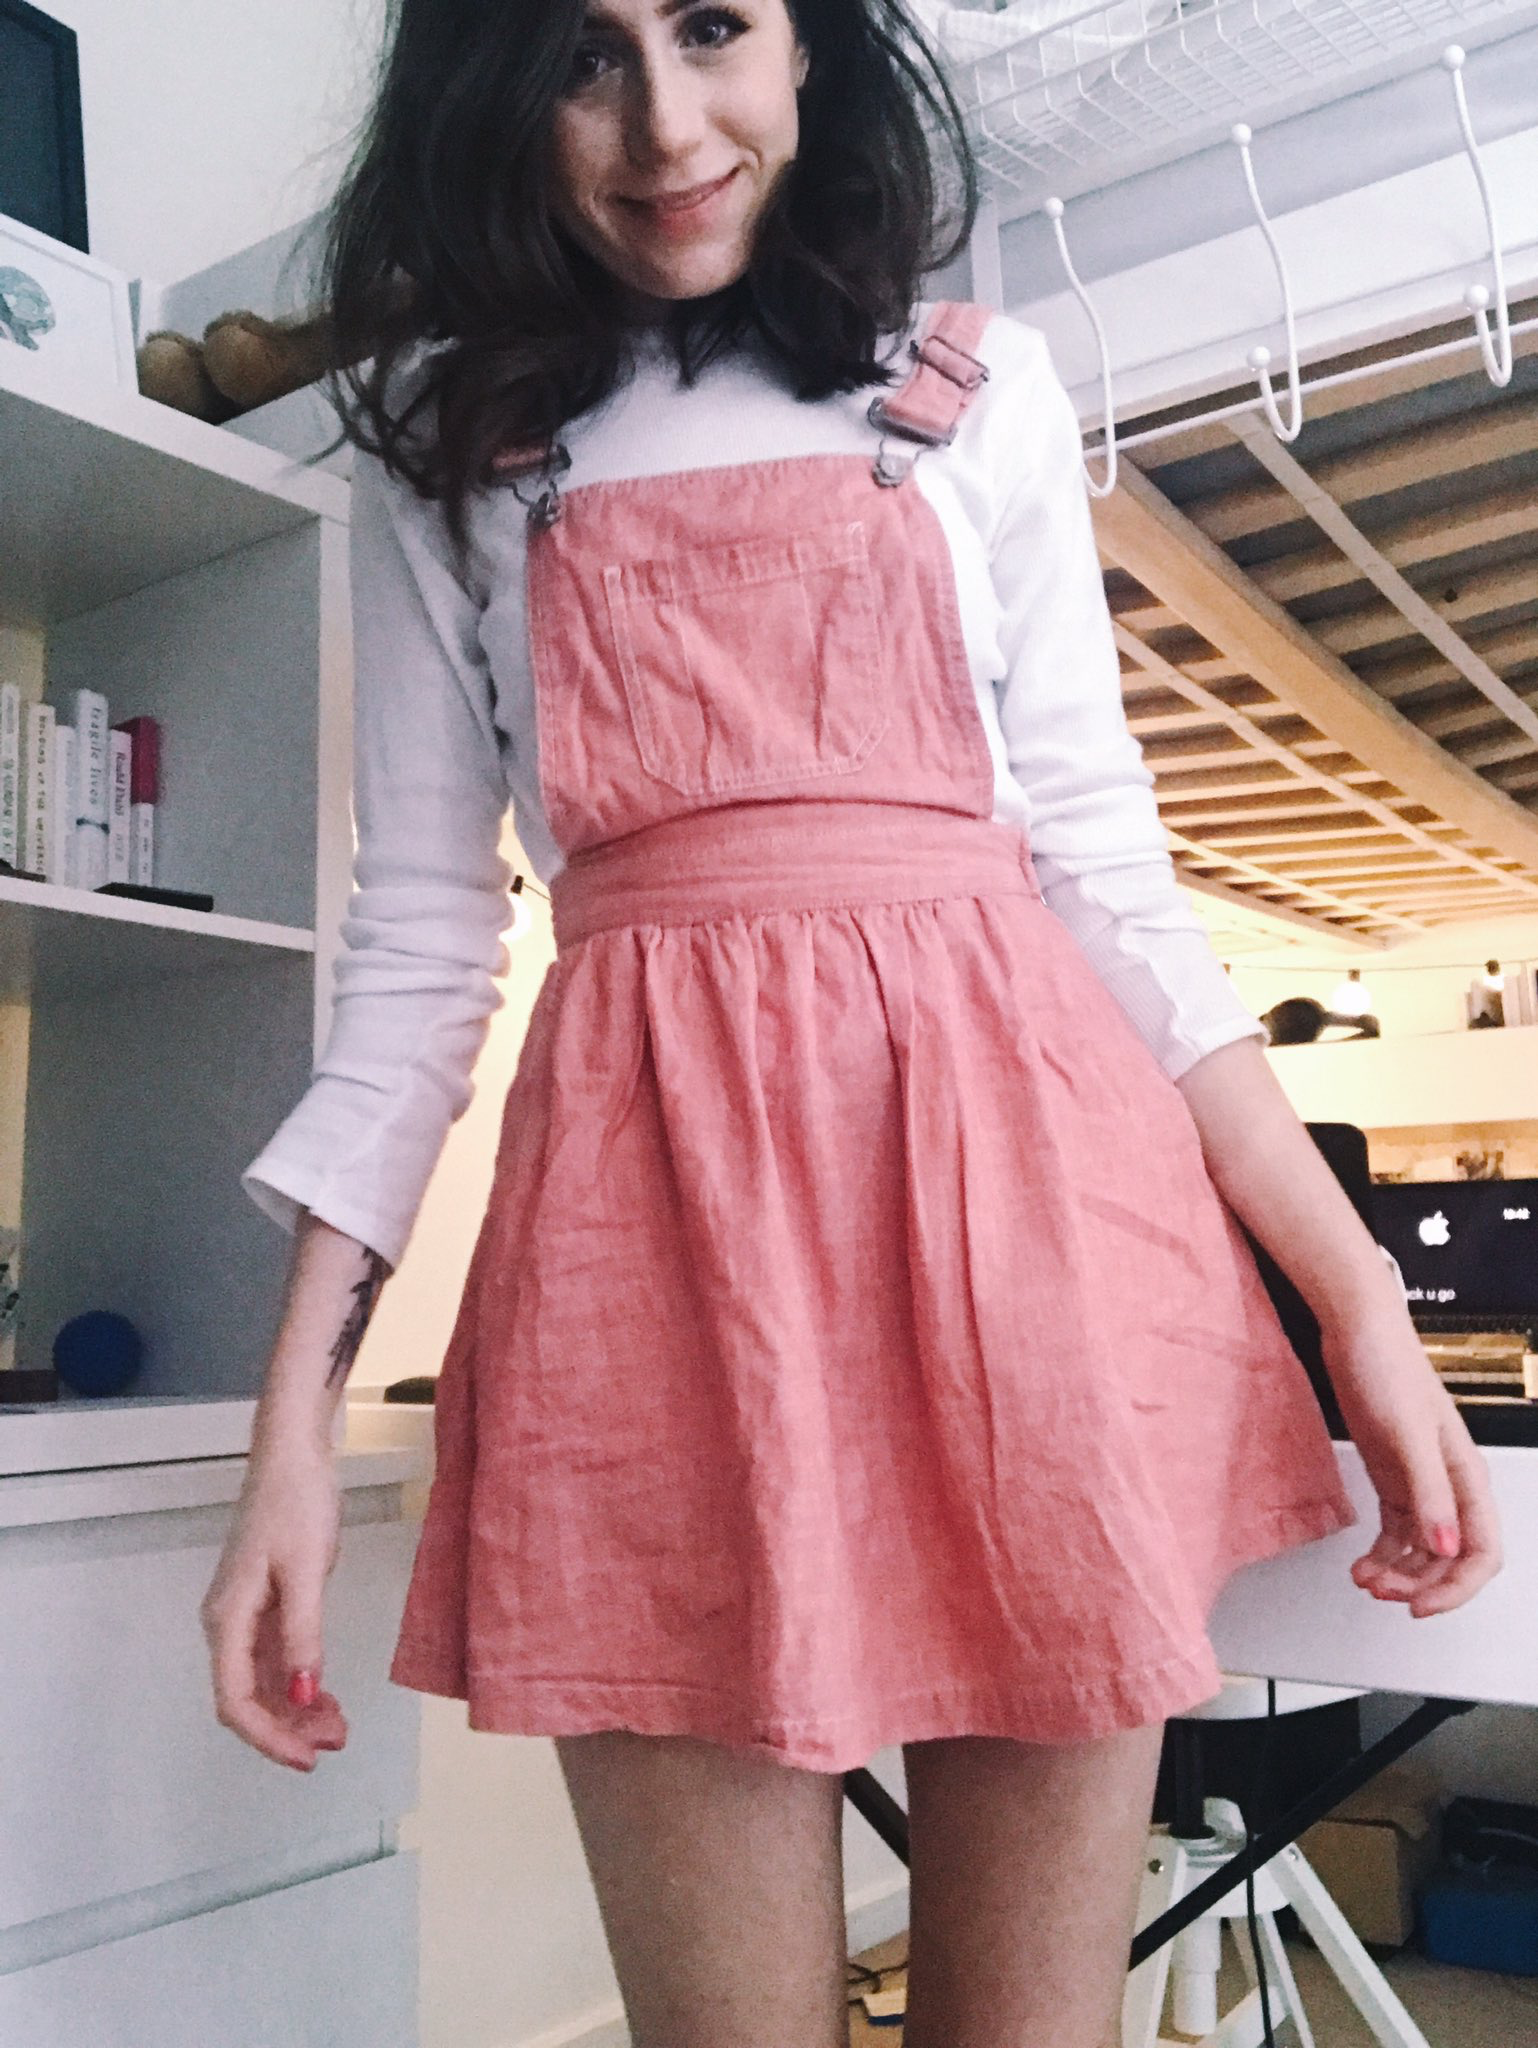 Cute and Quirky Vintage Outfit | Dresses/Skirts | Pinterest | Vintage outfits Dodie clark and ...